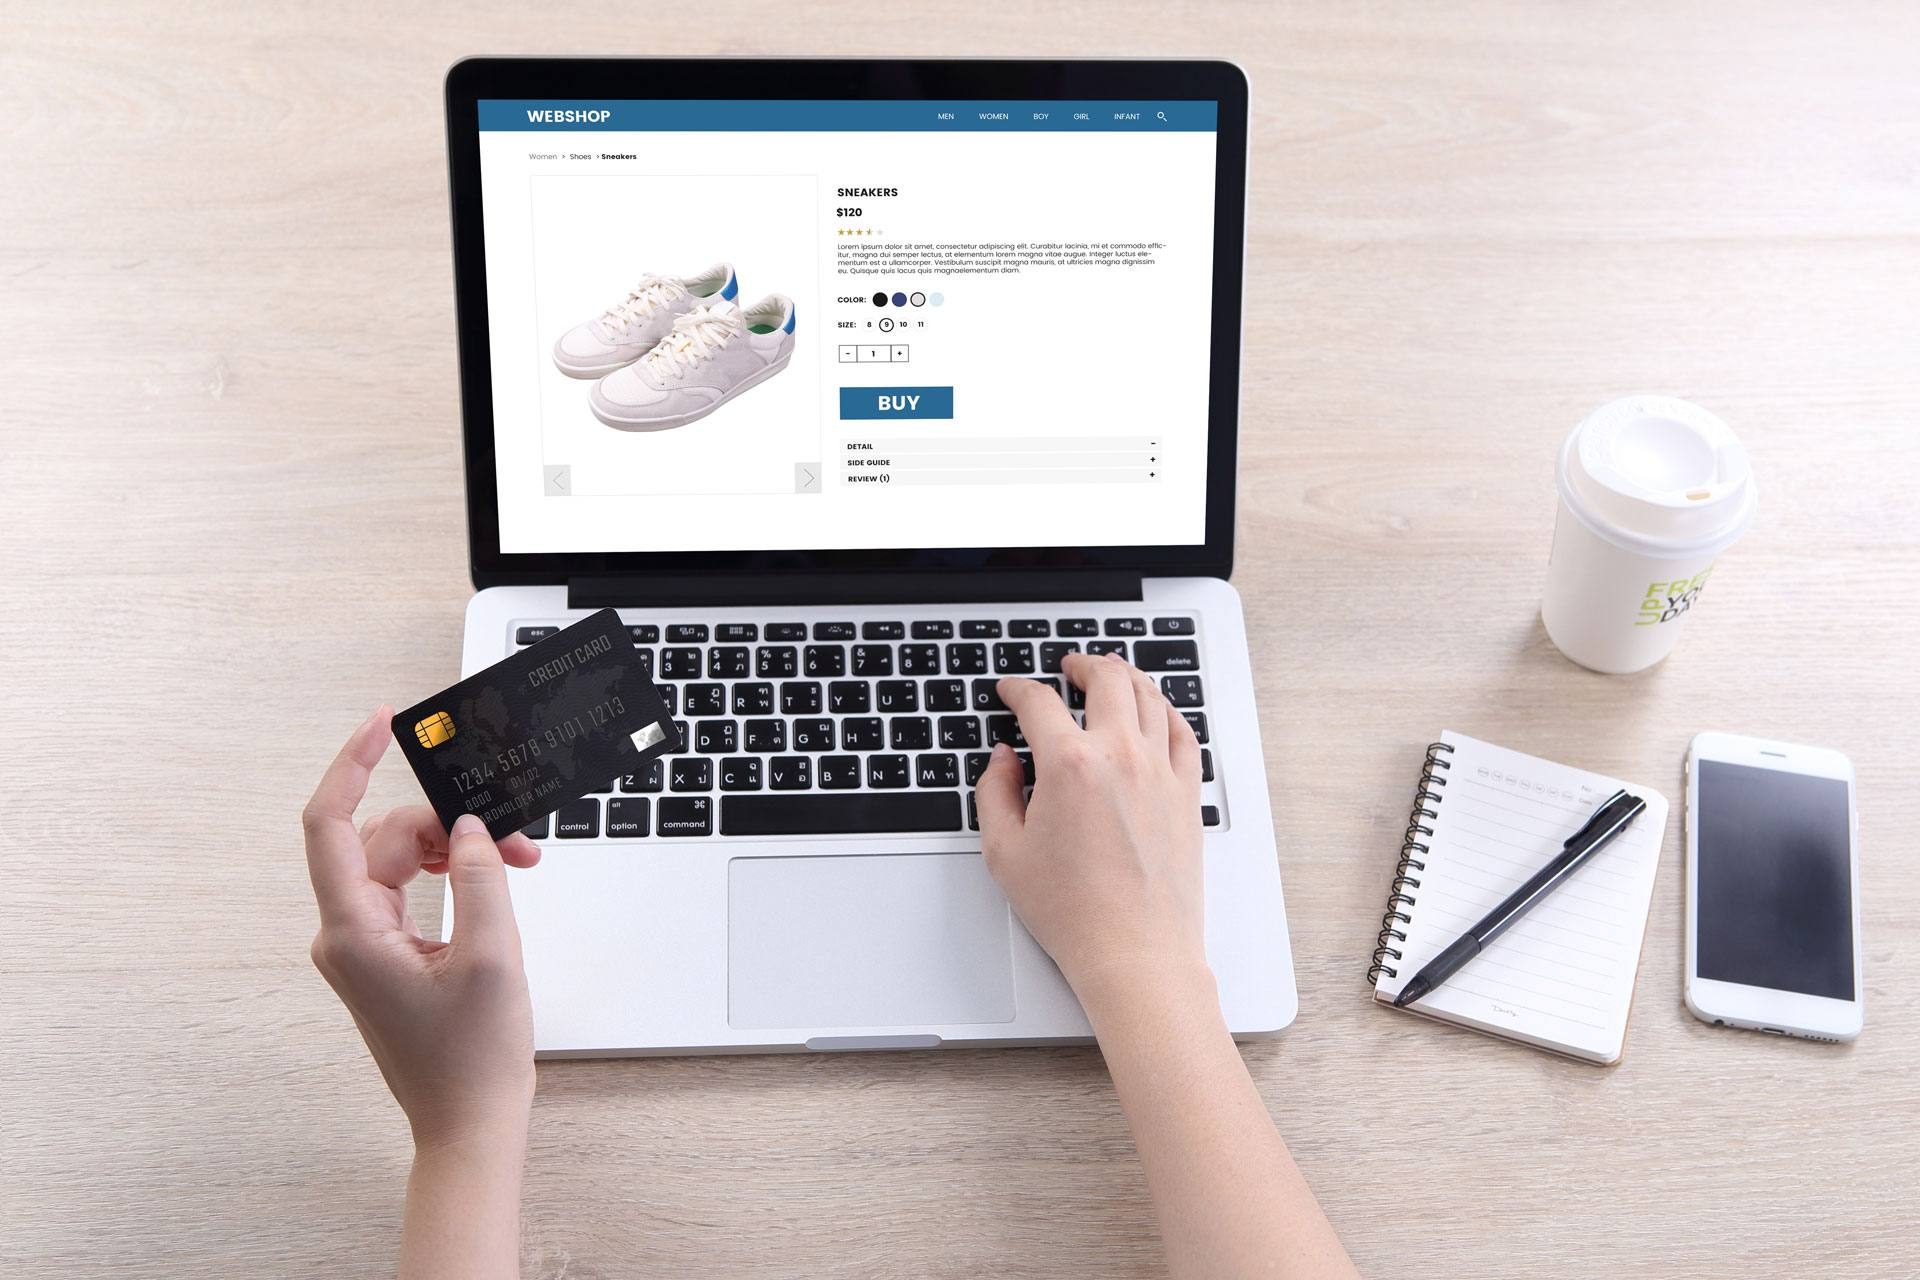 Hands on a laptop, using a credit card to shop online.eCommerce website development company for marijuana and cannabis businesses. web design and online store development.